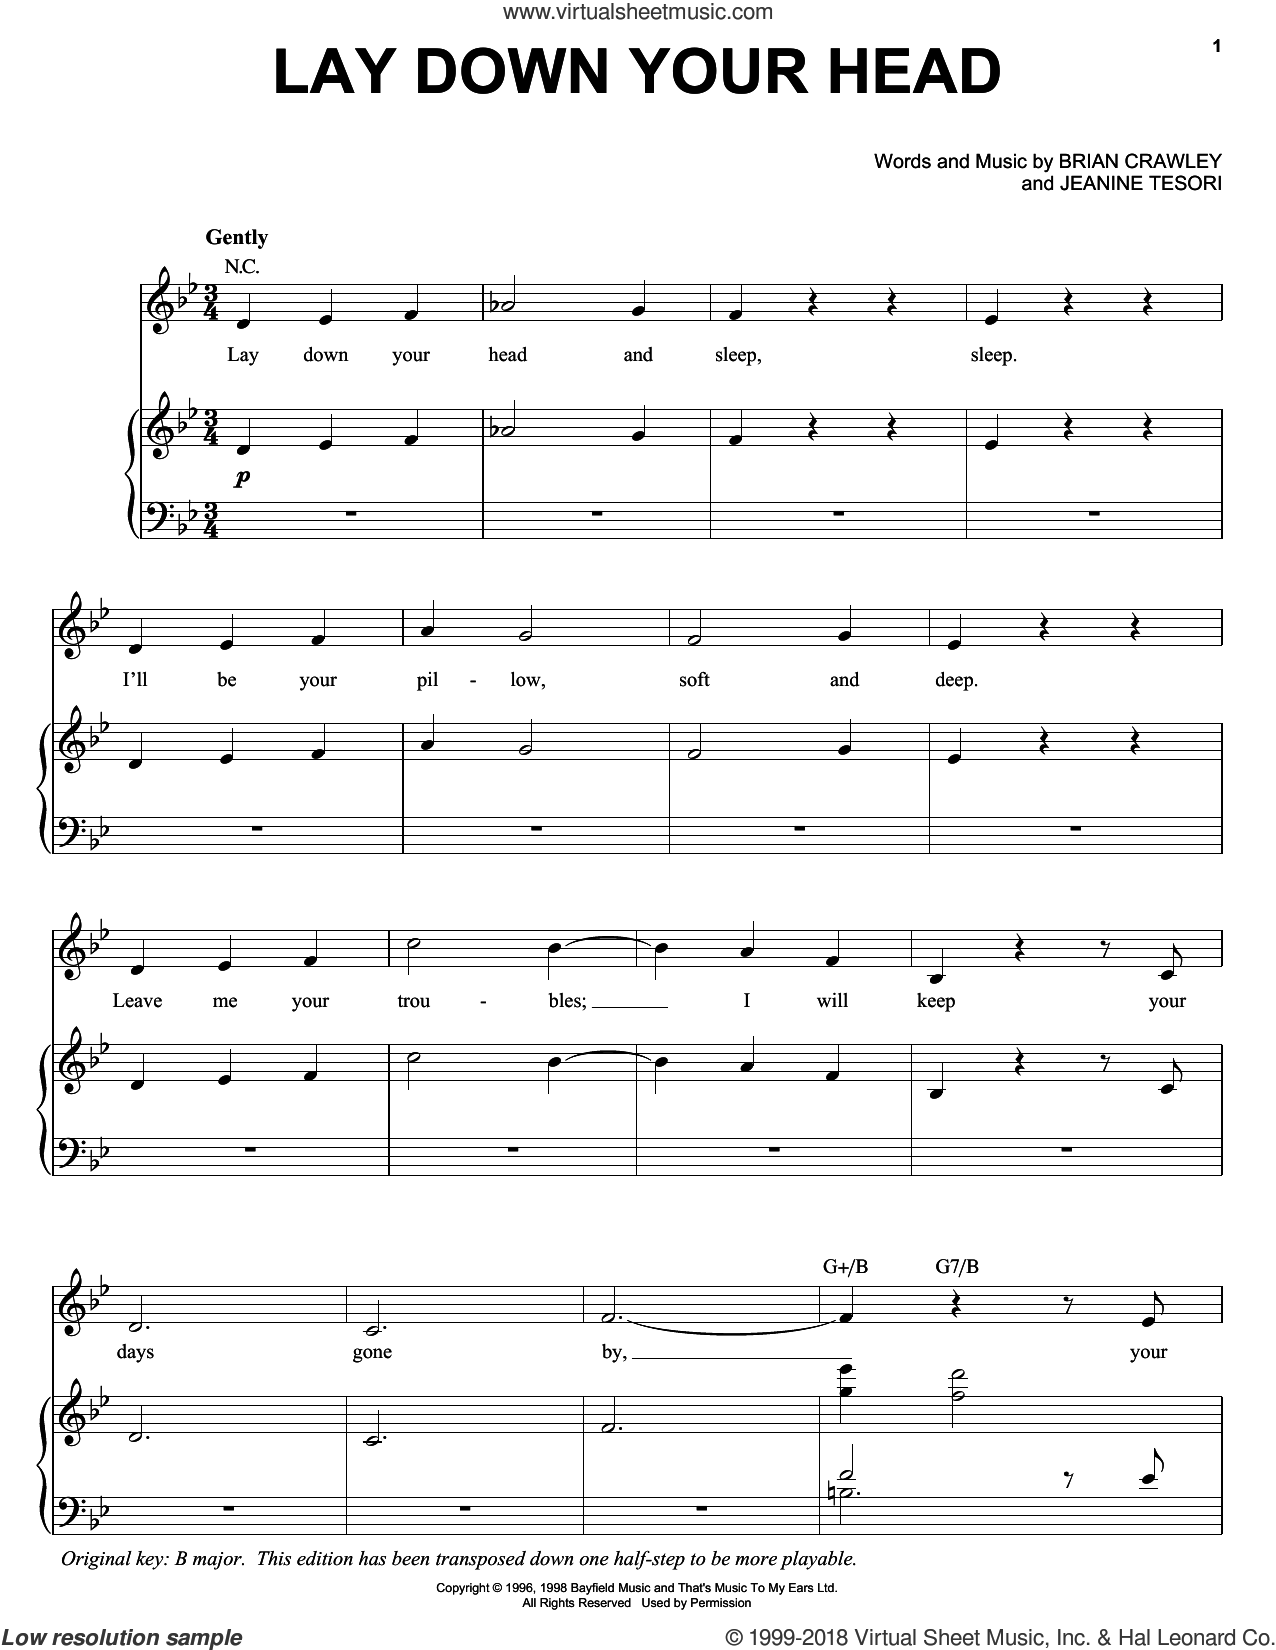 Lay Down Your Head sheet music for voice, piano or guitar by Jeanine Tesori